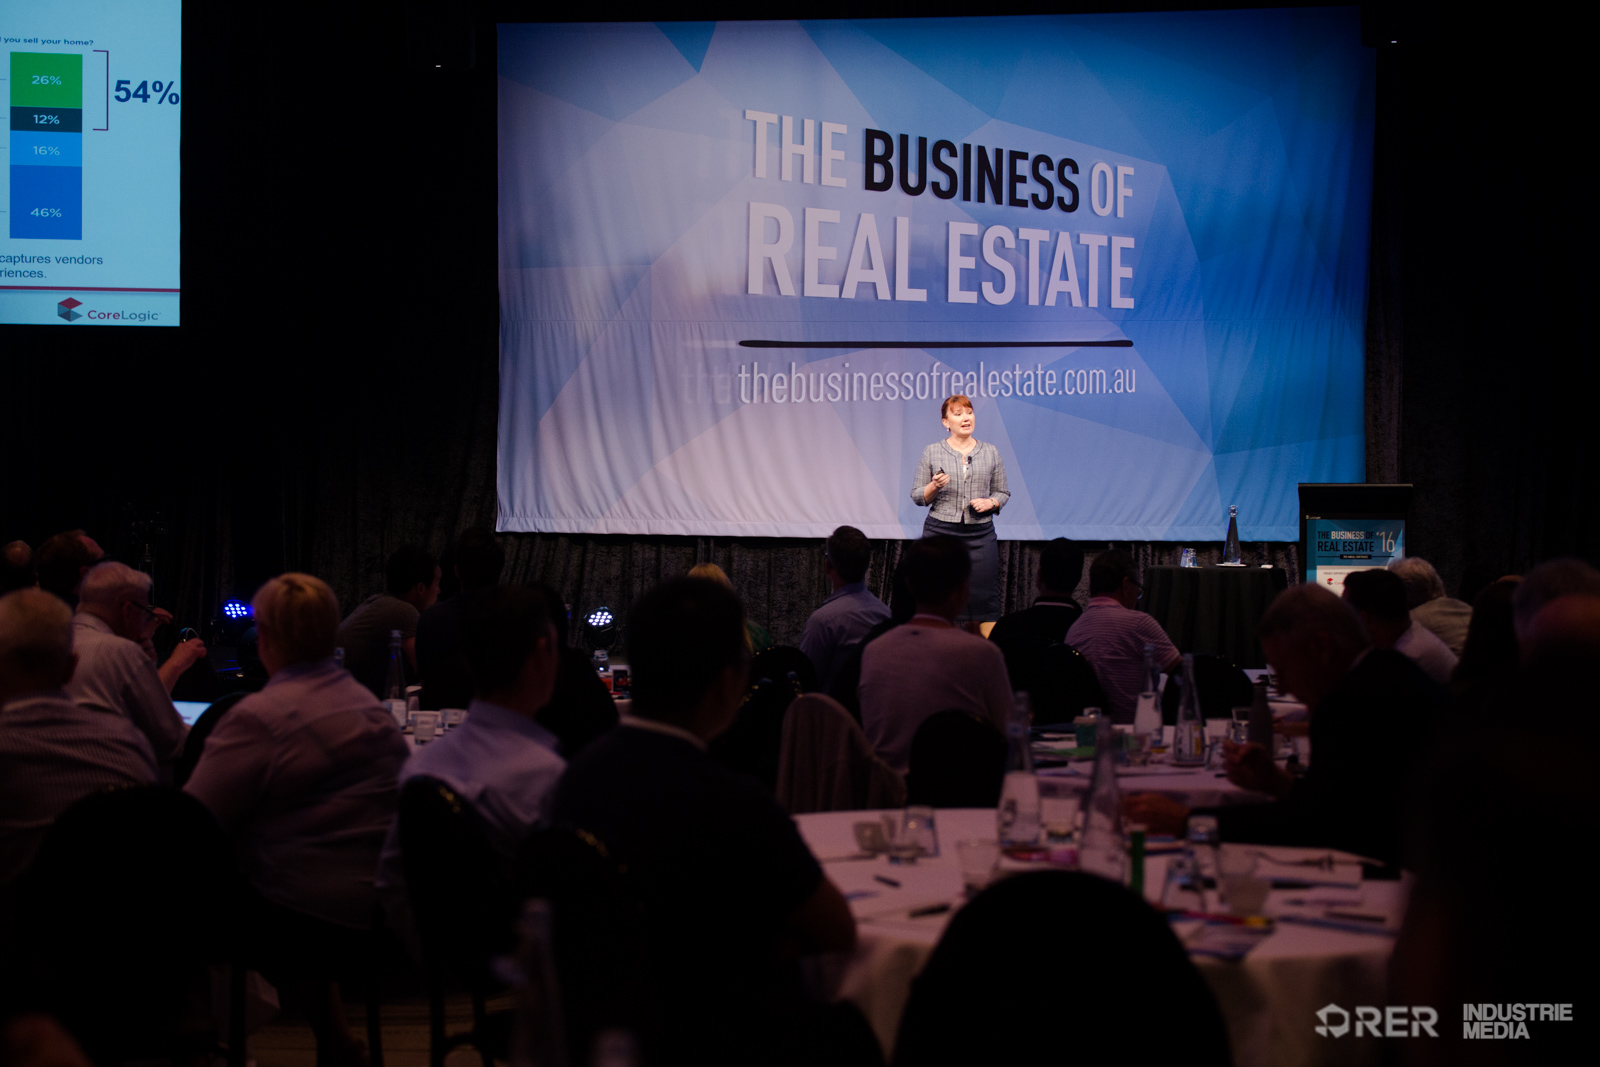 https://www.thebusinessofrealestate.com.au/wp-content/uploads/2016/09/RER_BUSINESS_OF_REAL_ESTATE_DAY_2-55.jpg